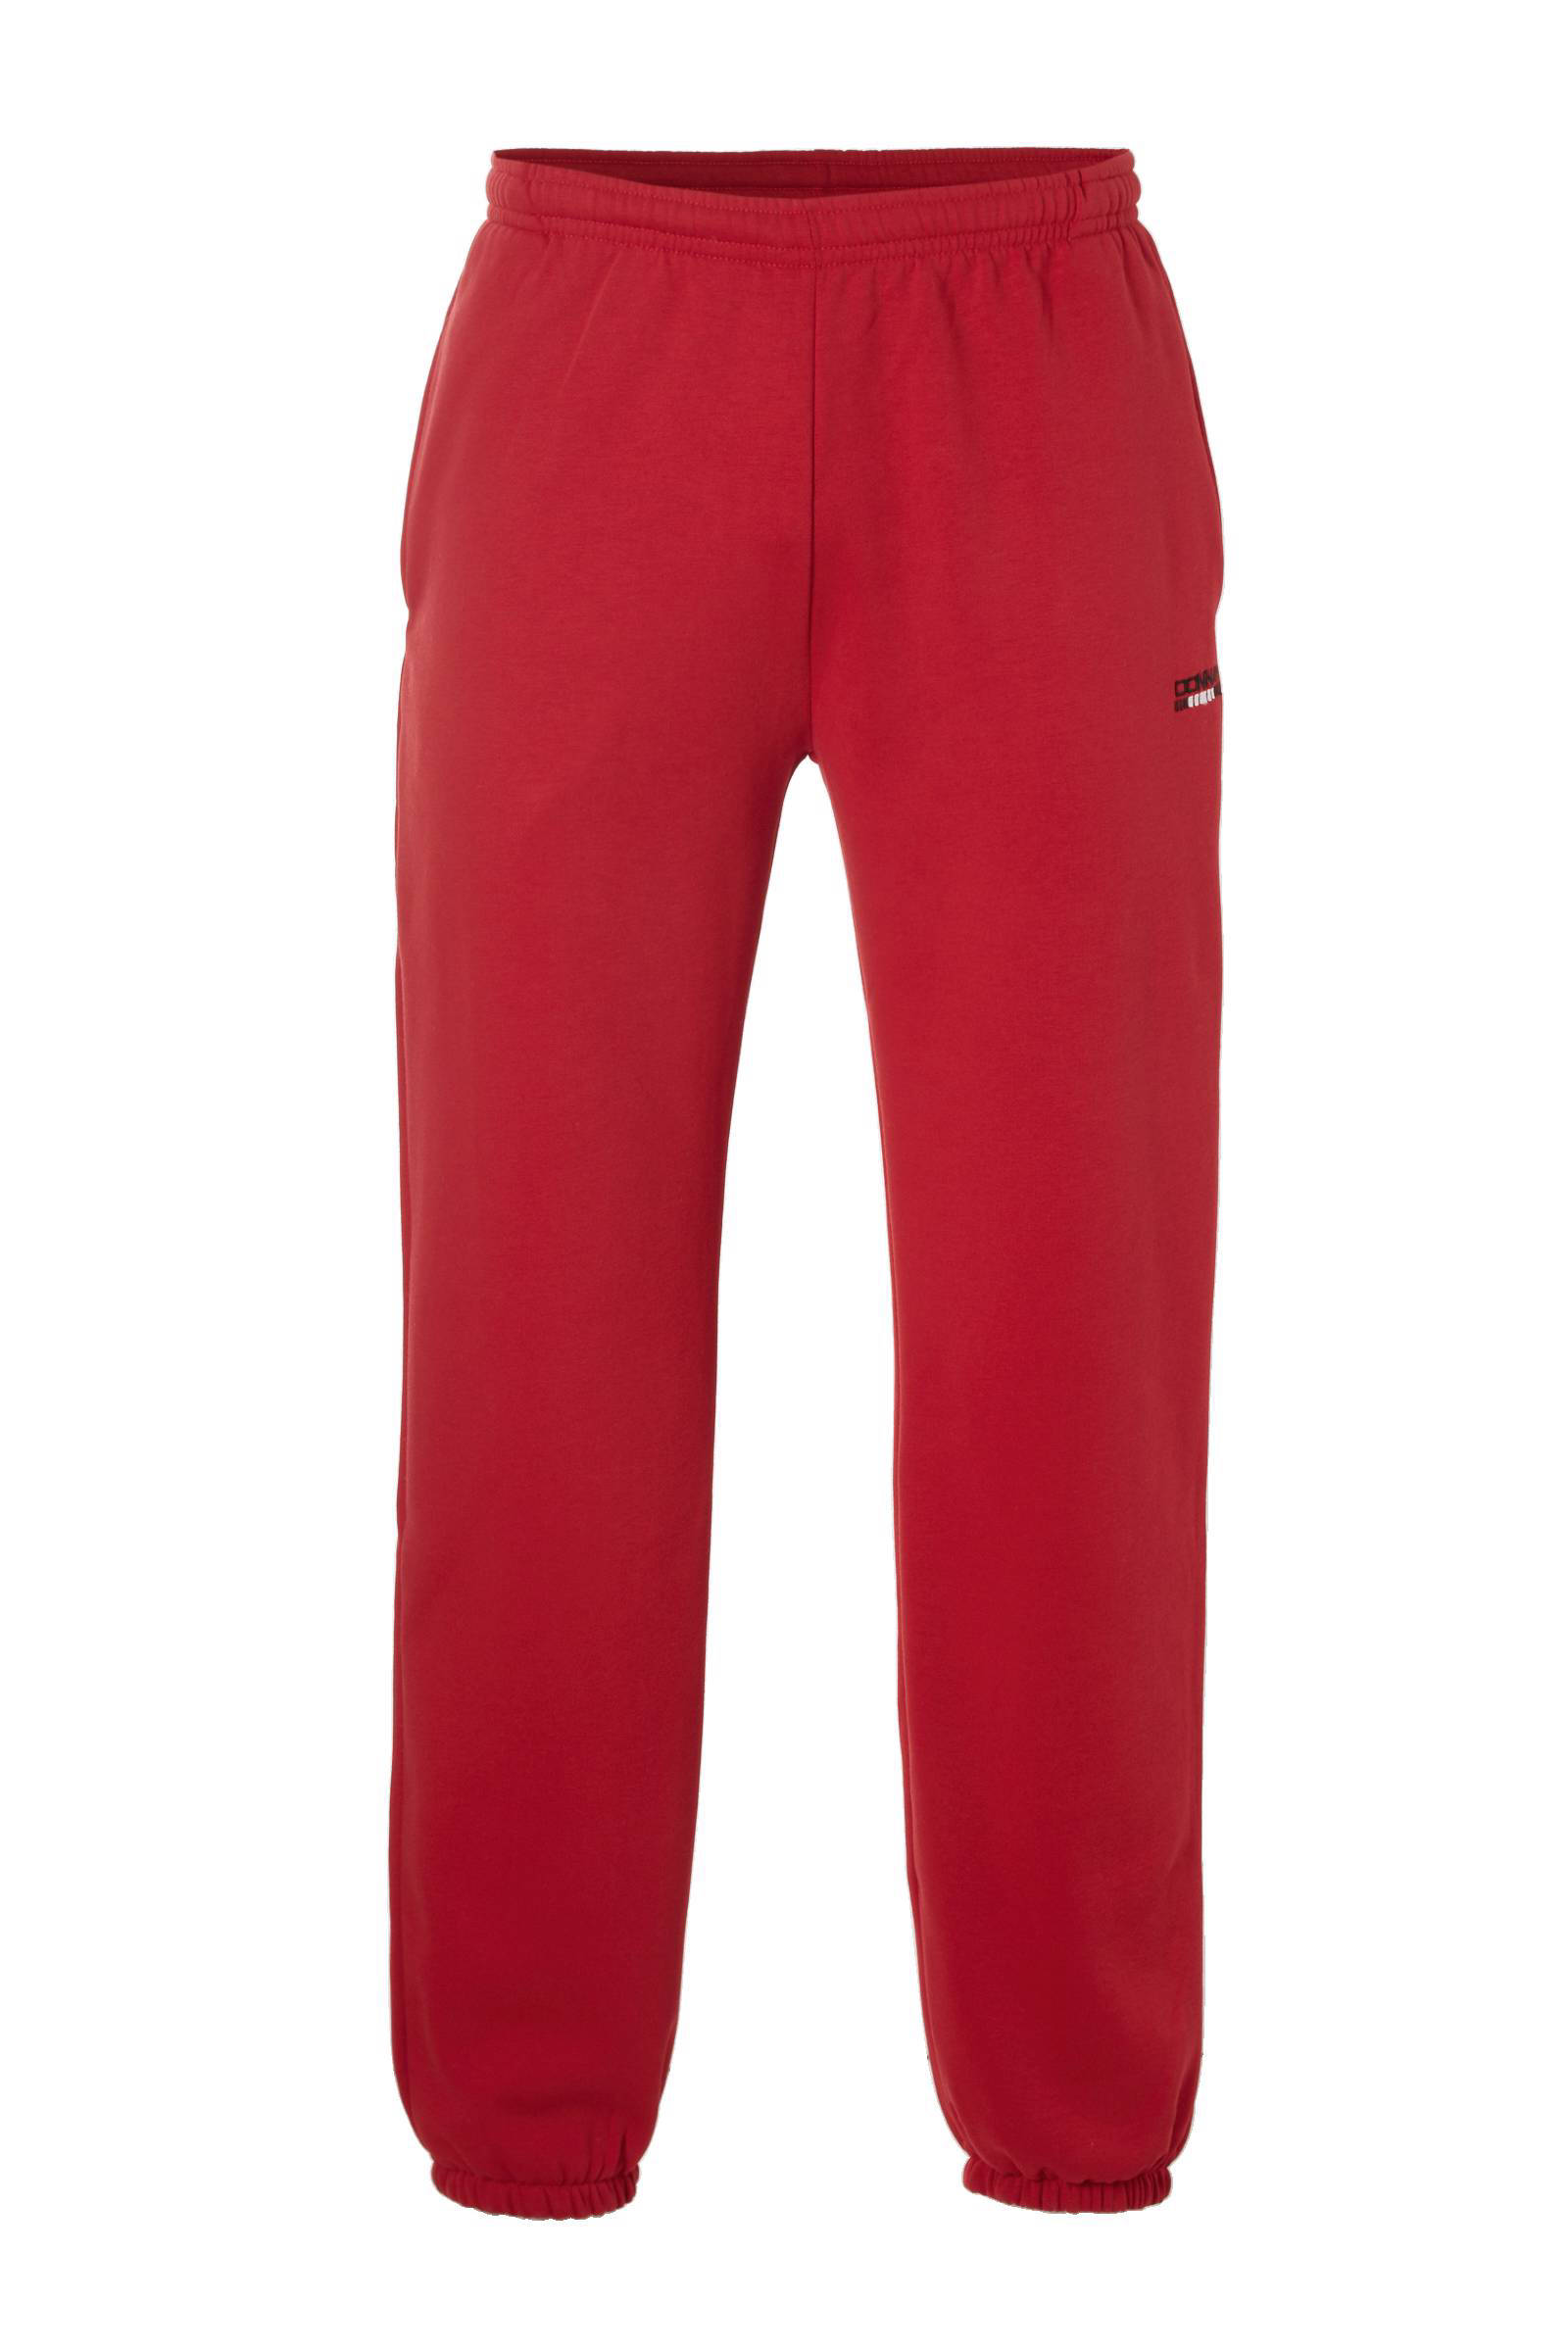 Rode Joggingbroek Heren.Donnay Joggingbroek Rood Wehkamp